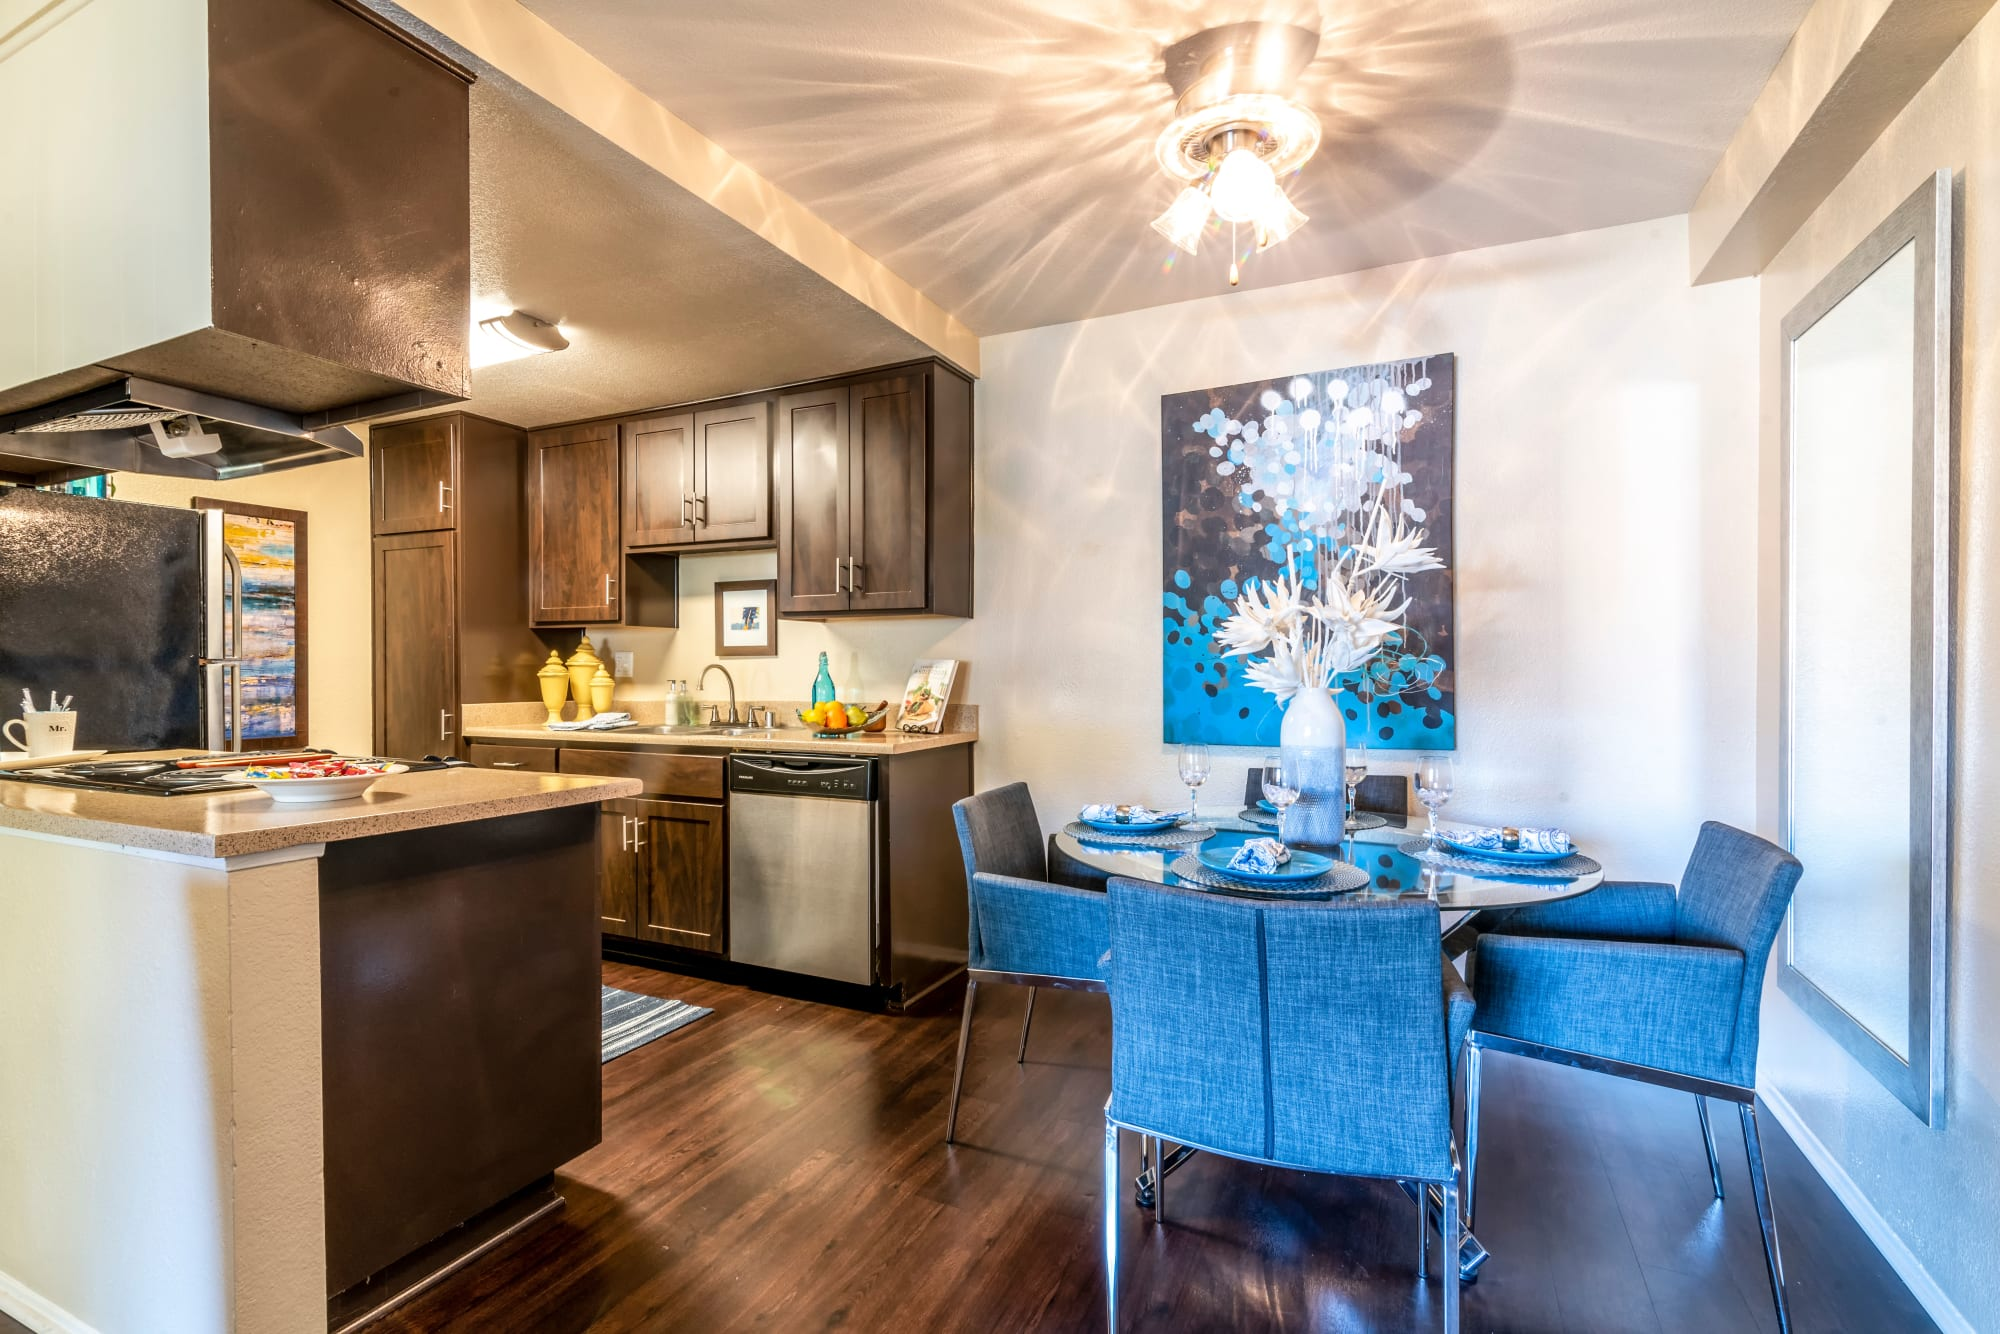 Well Decorated Apartment Interior, Renovated brown spec kitchen and dining room area at Terra Nova Villas in Chula Vista, CA